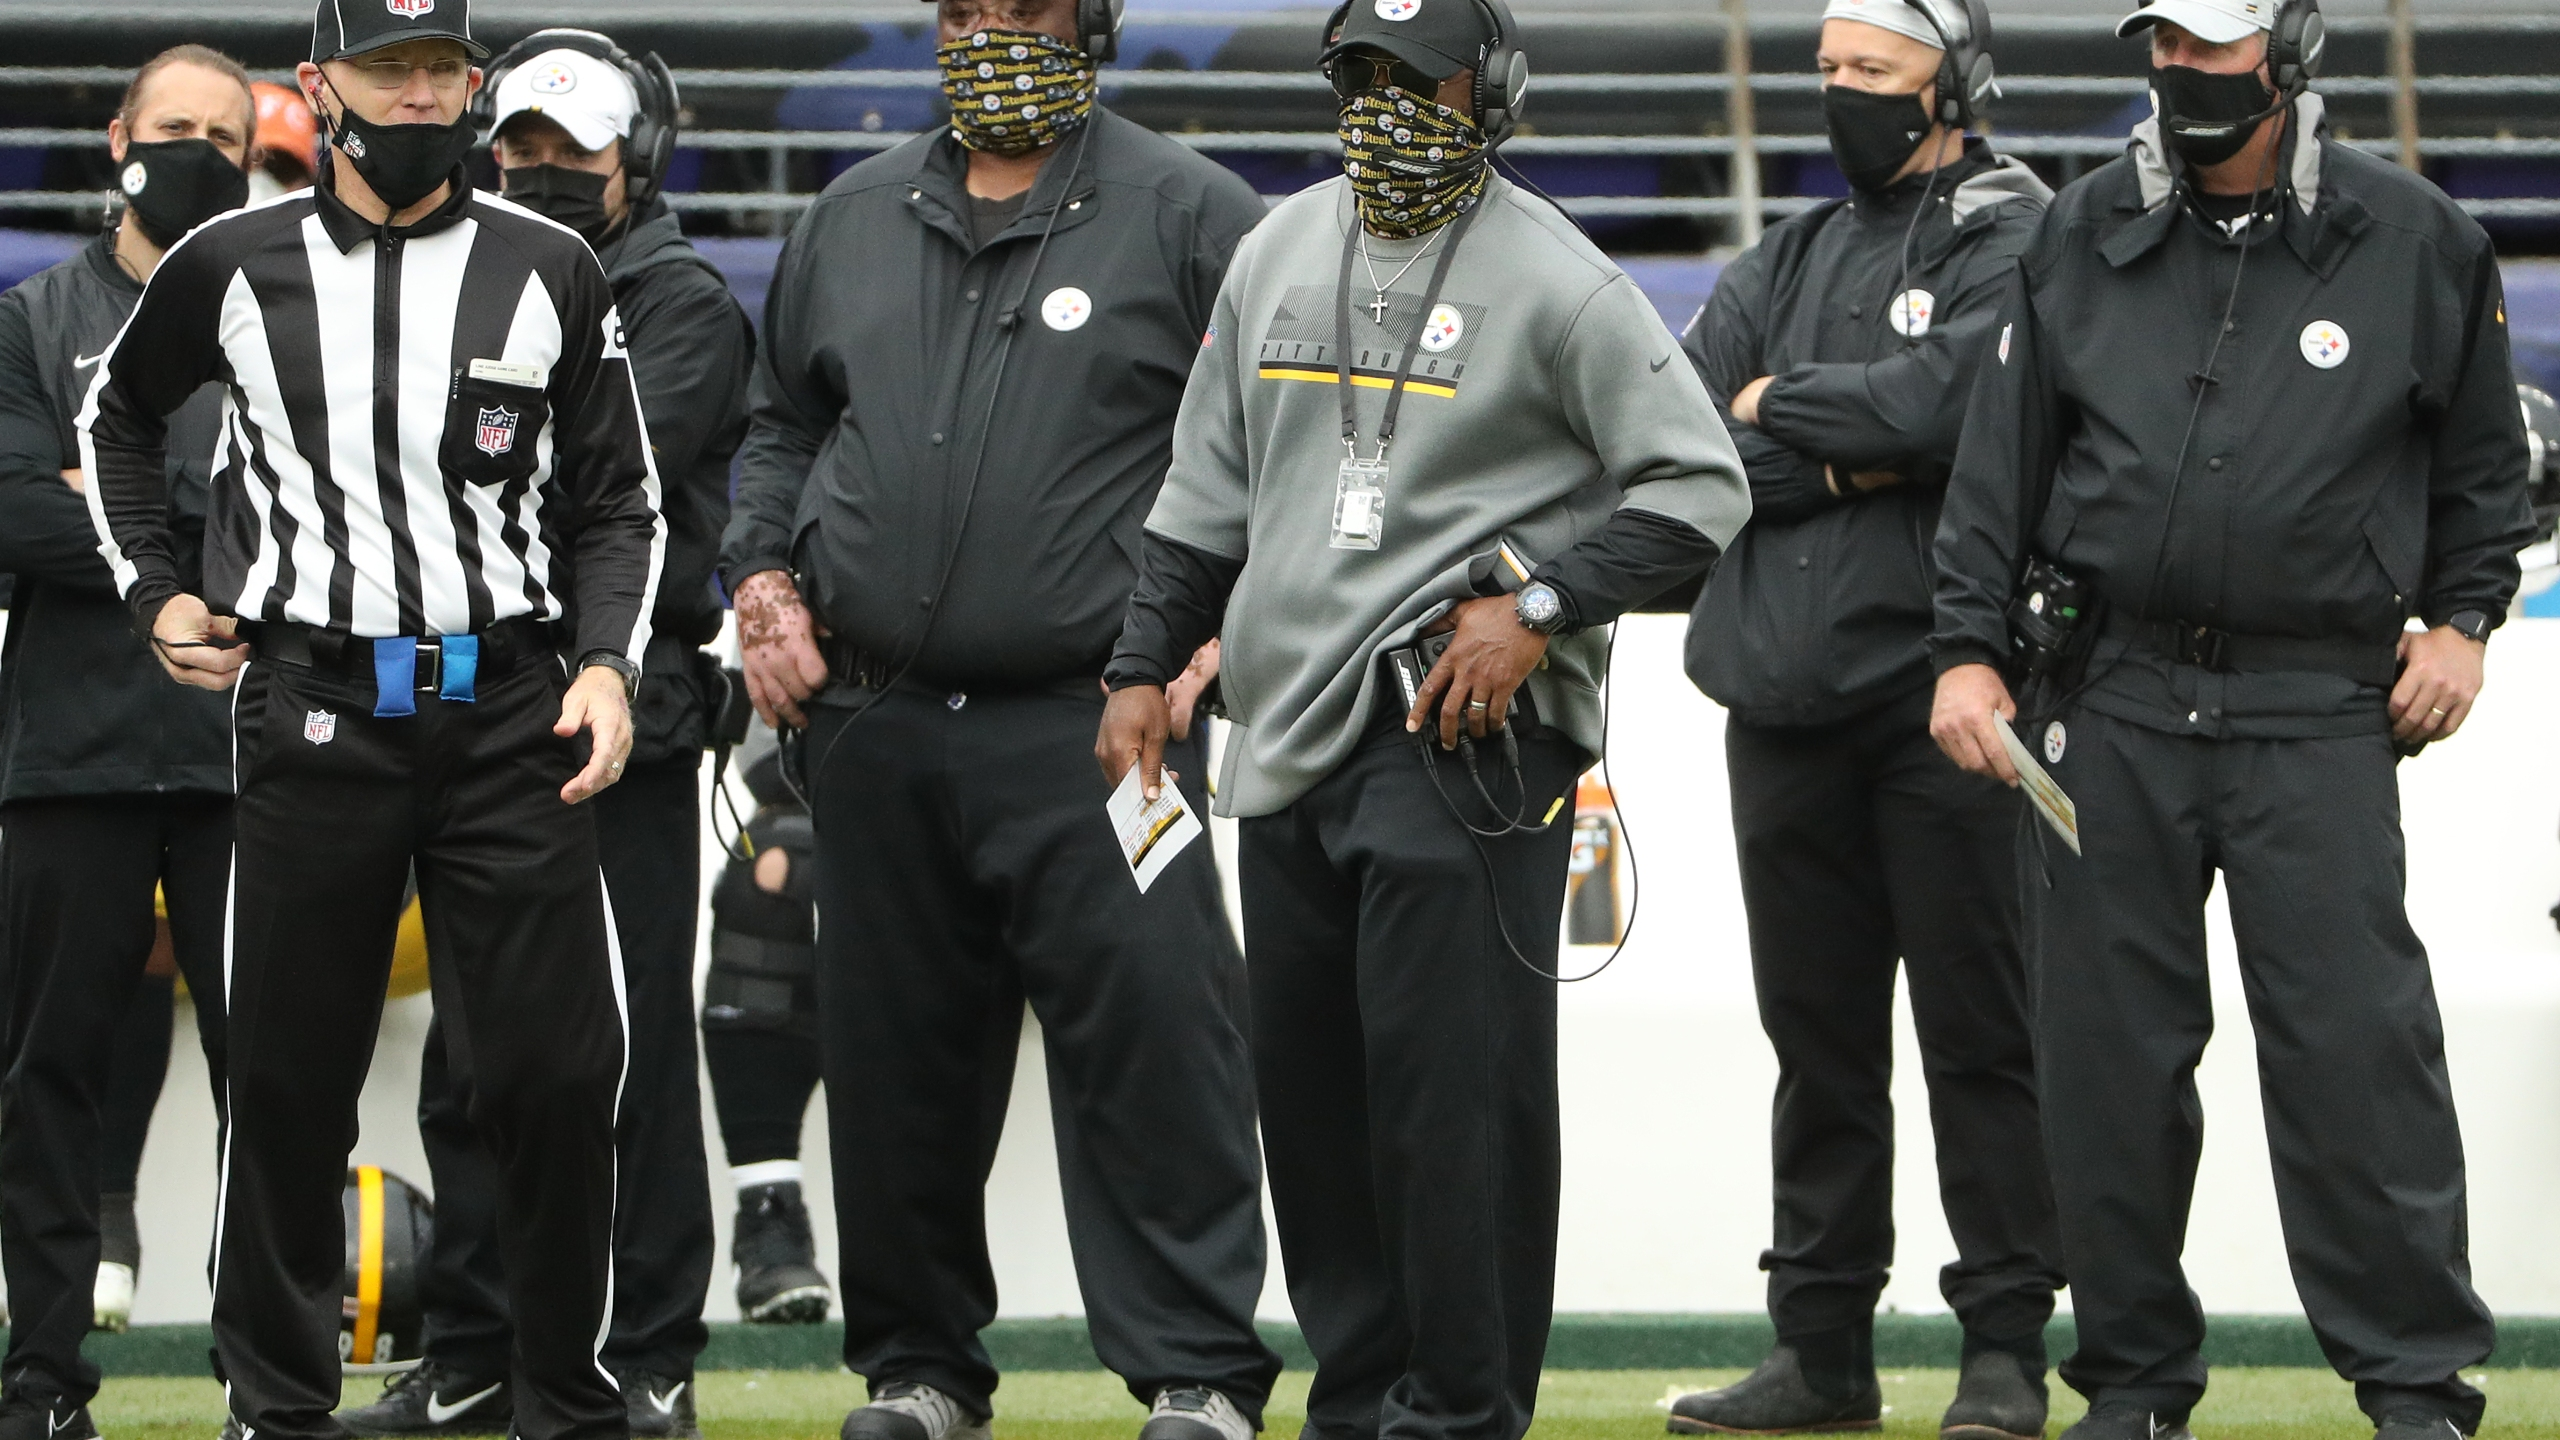 Head coach Mike Tomlin of the Pittsburgh Steelers looks on from the sideline against the Baltimore Ravens at M&T Bank Stadium on November 01, 2020 in Baltimore, Maryland. (Photo by Patrick Smith/Getty Images)